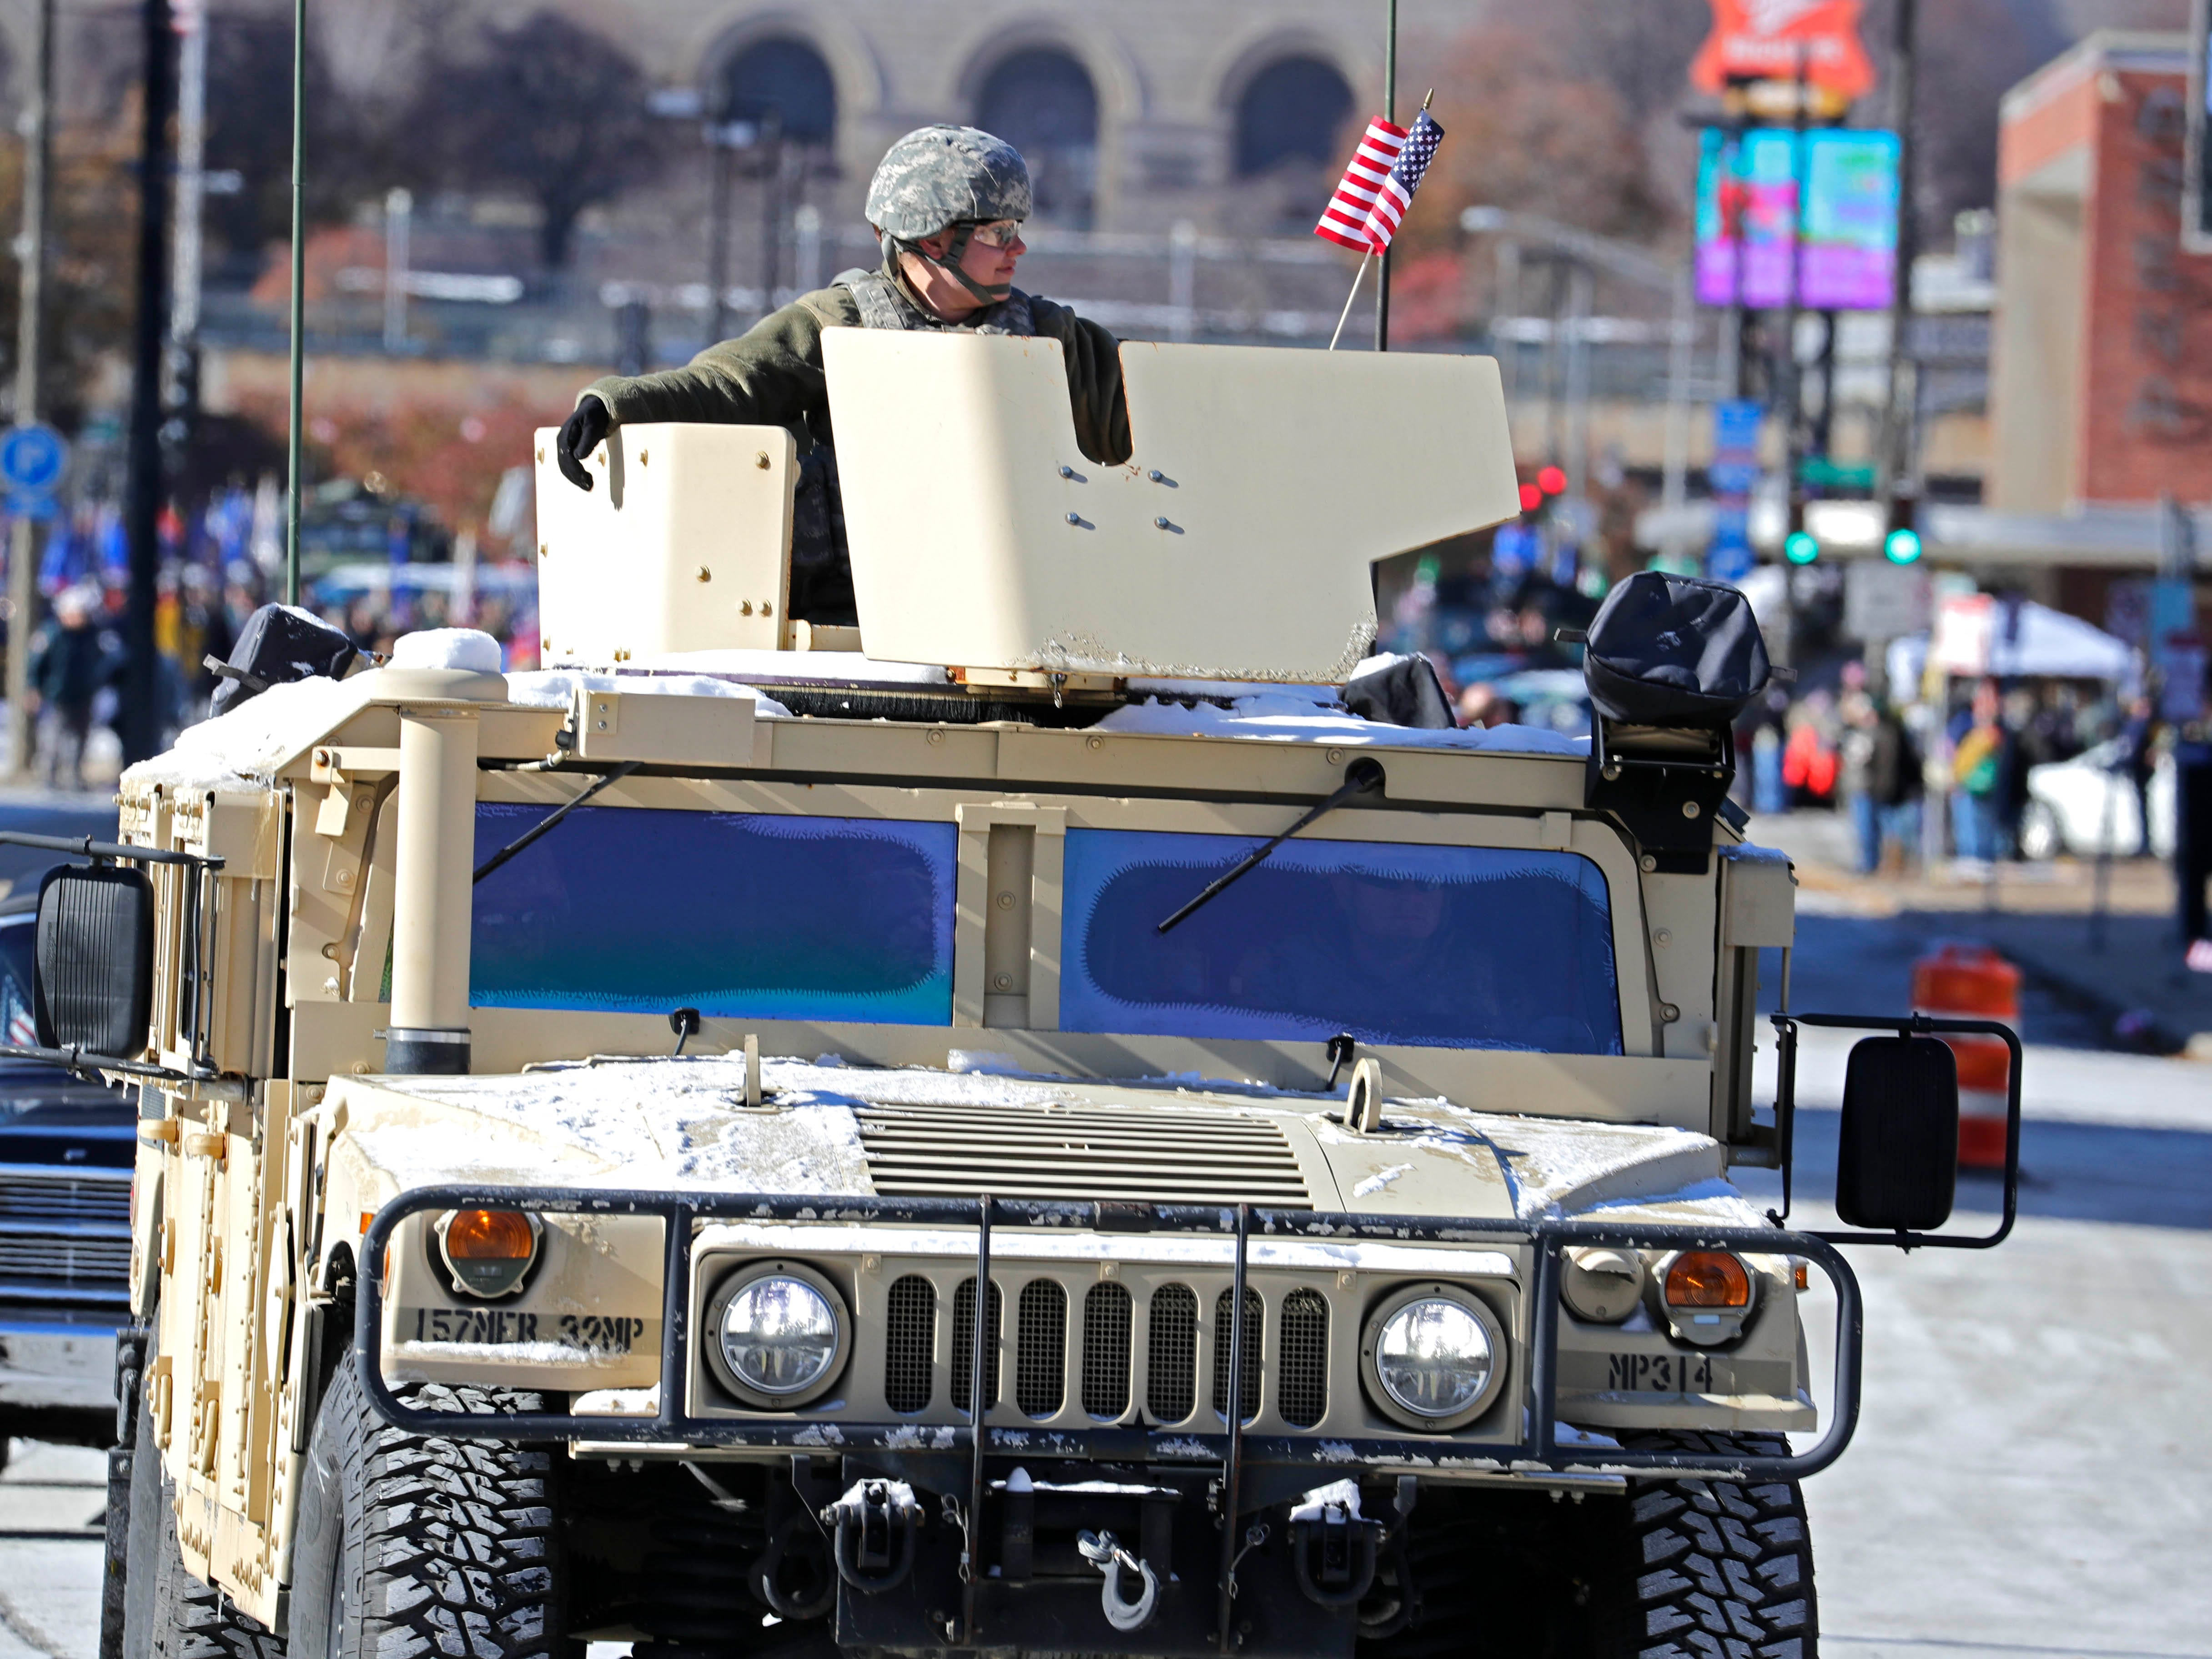 Military vehicles from several wars, including one from the Iraq War, were on display during the Milwaukee Veterans Day parade on Saturday. Ninety to 100 units participated in the parade, which commemorated  the centennial of the World War I armistice. A memorial service was also held at the Milwaukee County War Memorial.